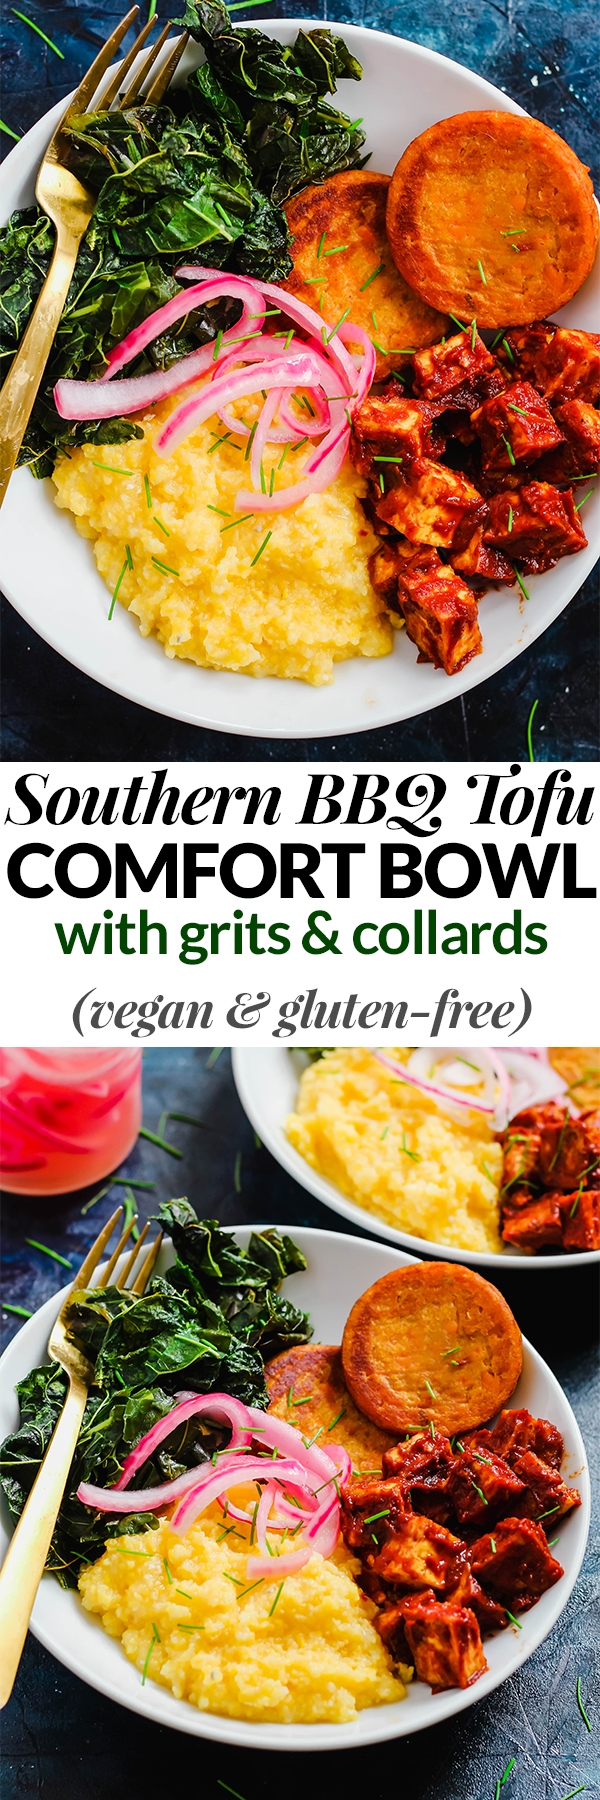 This Southern BBQ Tofu Comfort Bowl with Grits & Collard Greens will you give warm, cozy feelings and leave you feeling satisfied. This vegan, gluten-free version of a Southern comfort meal features hearty tofu, sweet potato hash browns, cheesy grits, and greens!